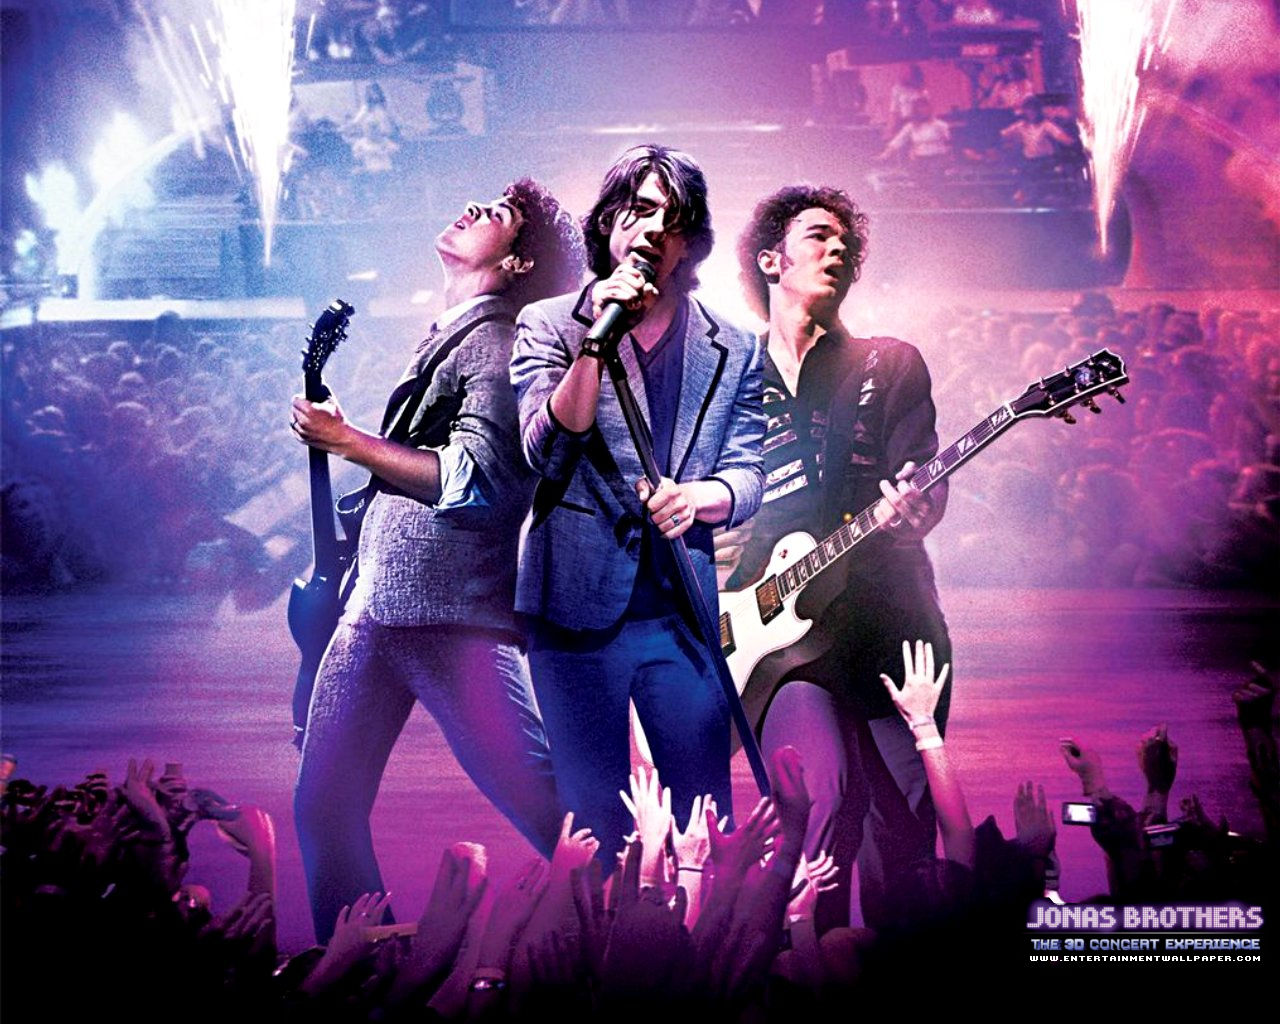 jonas brothers the 3d